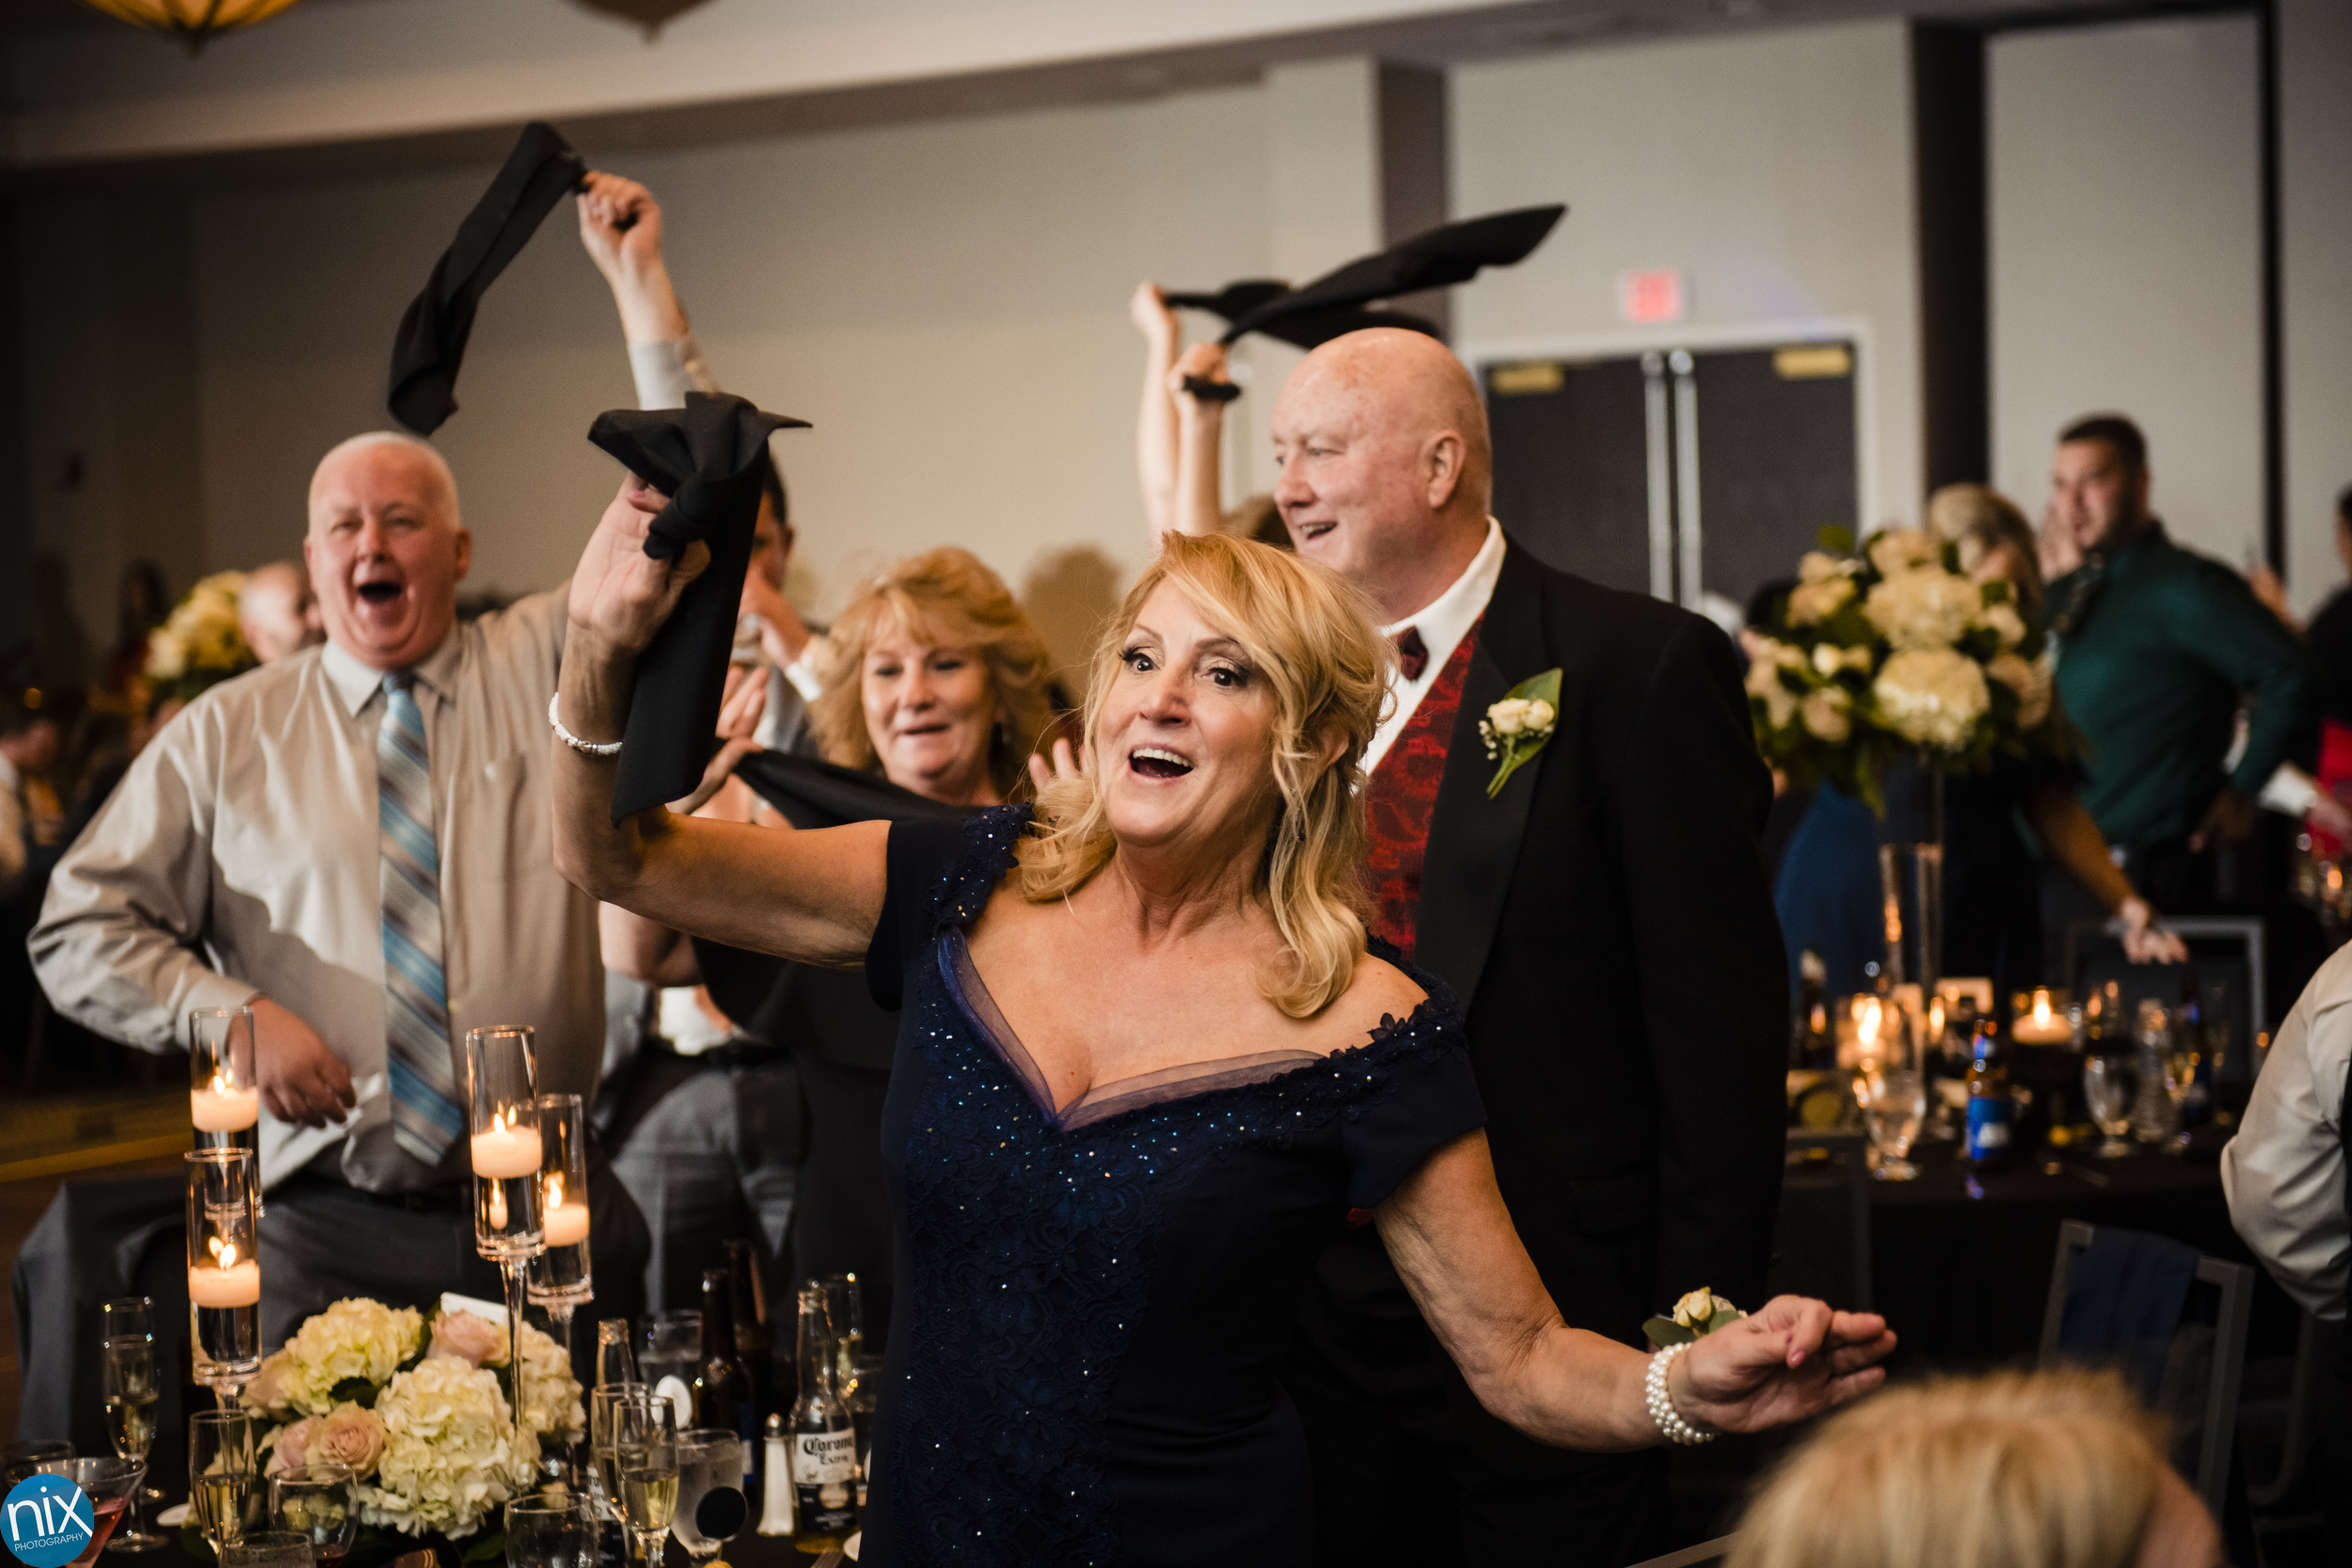 family dances at wedding reception at embassy suites.jpg